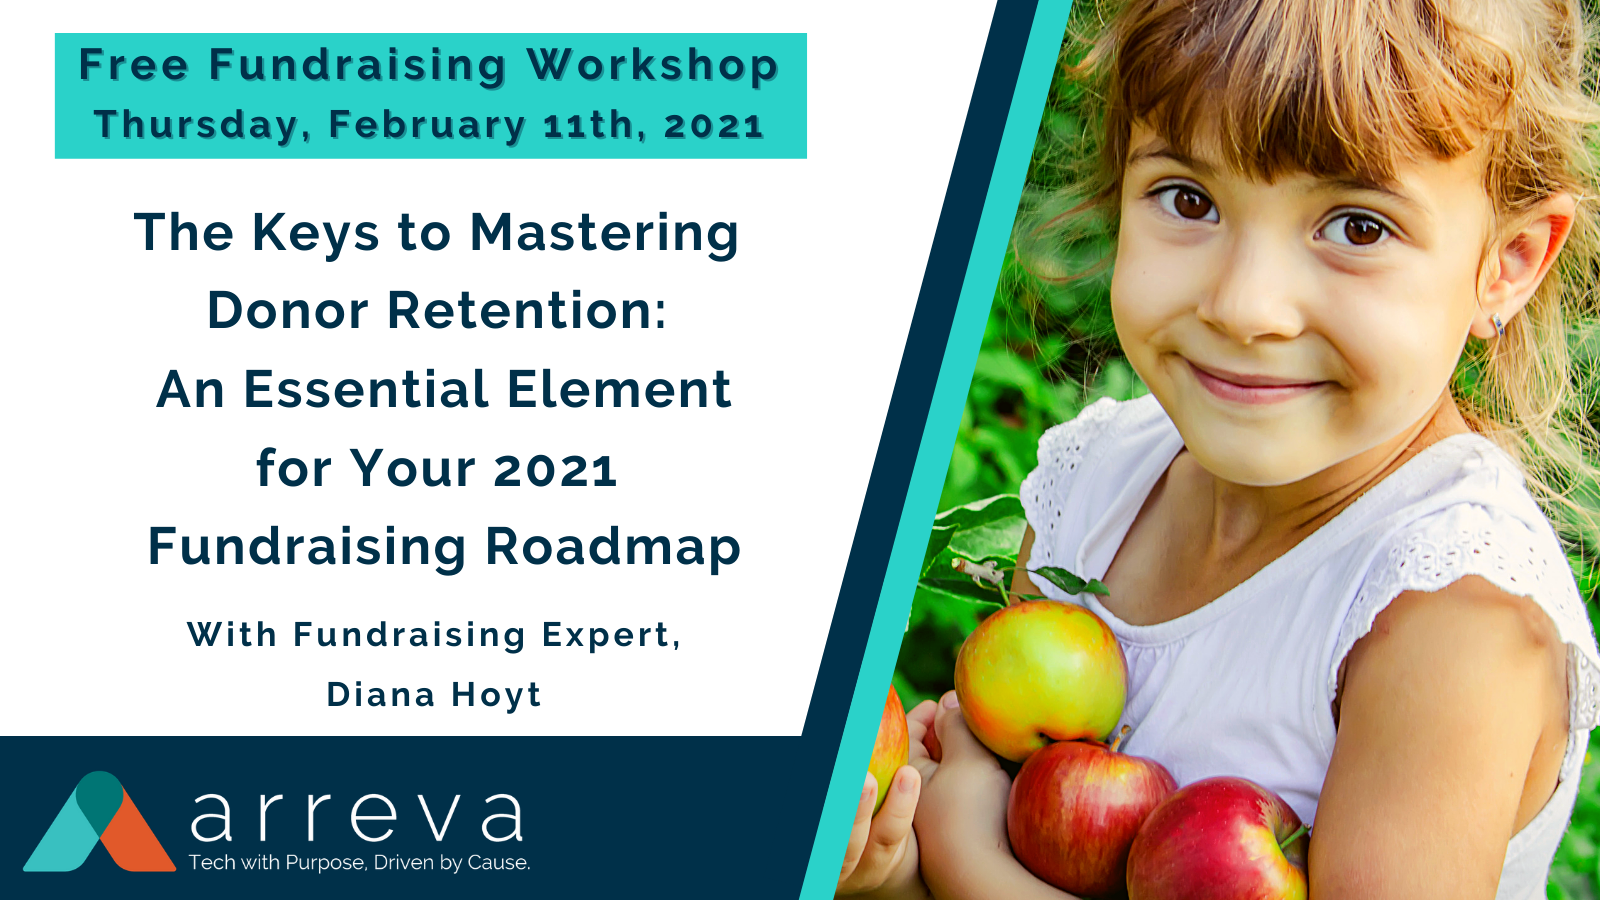 Free Fundraising Workshop: The Keys to Mastering Donor Retention